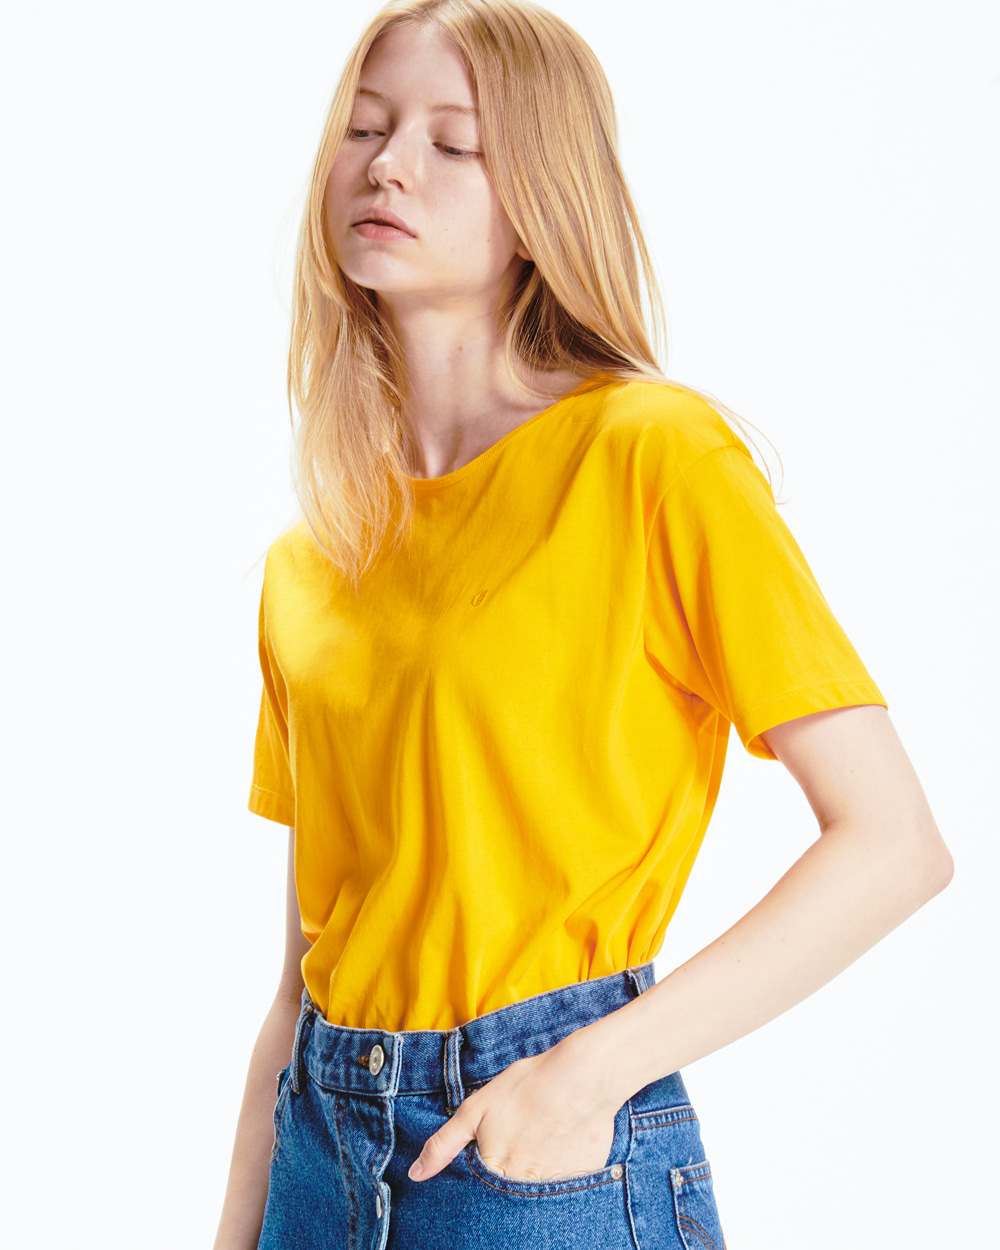 BACK LABEL YELLOW T-SHIRT